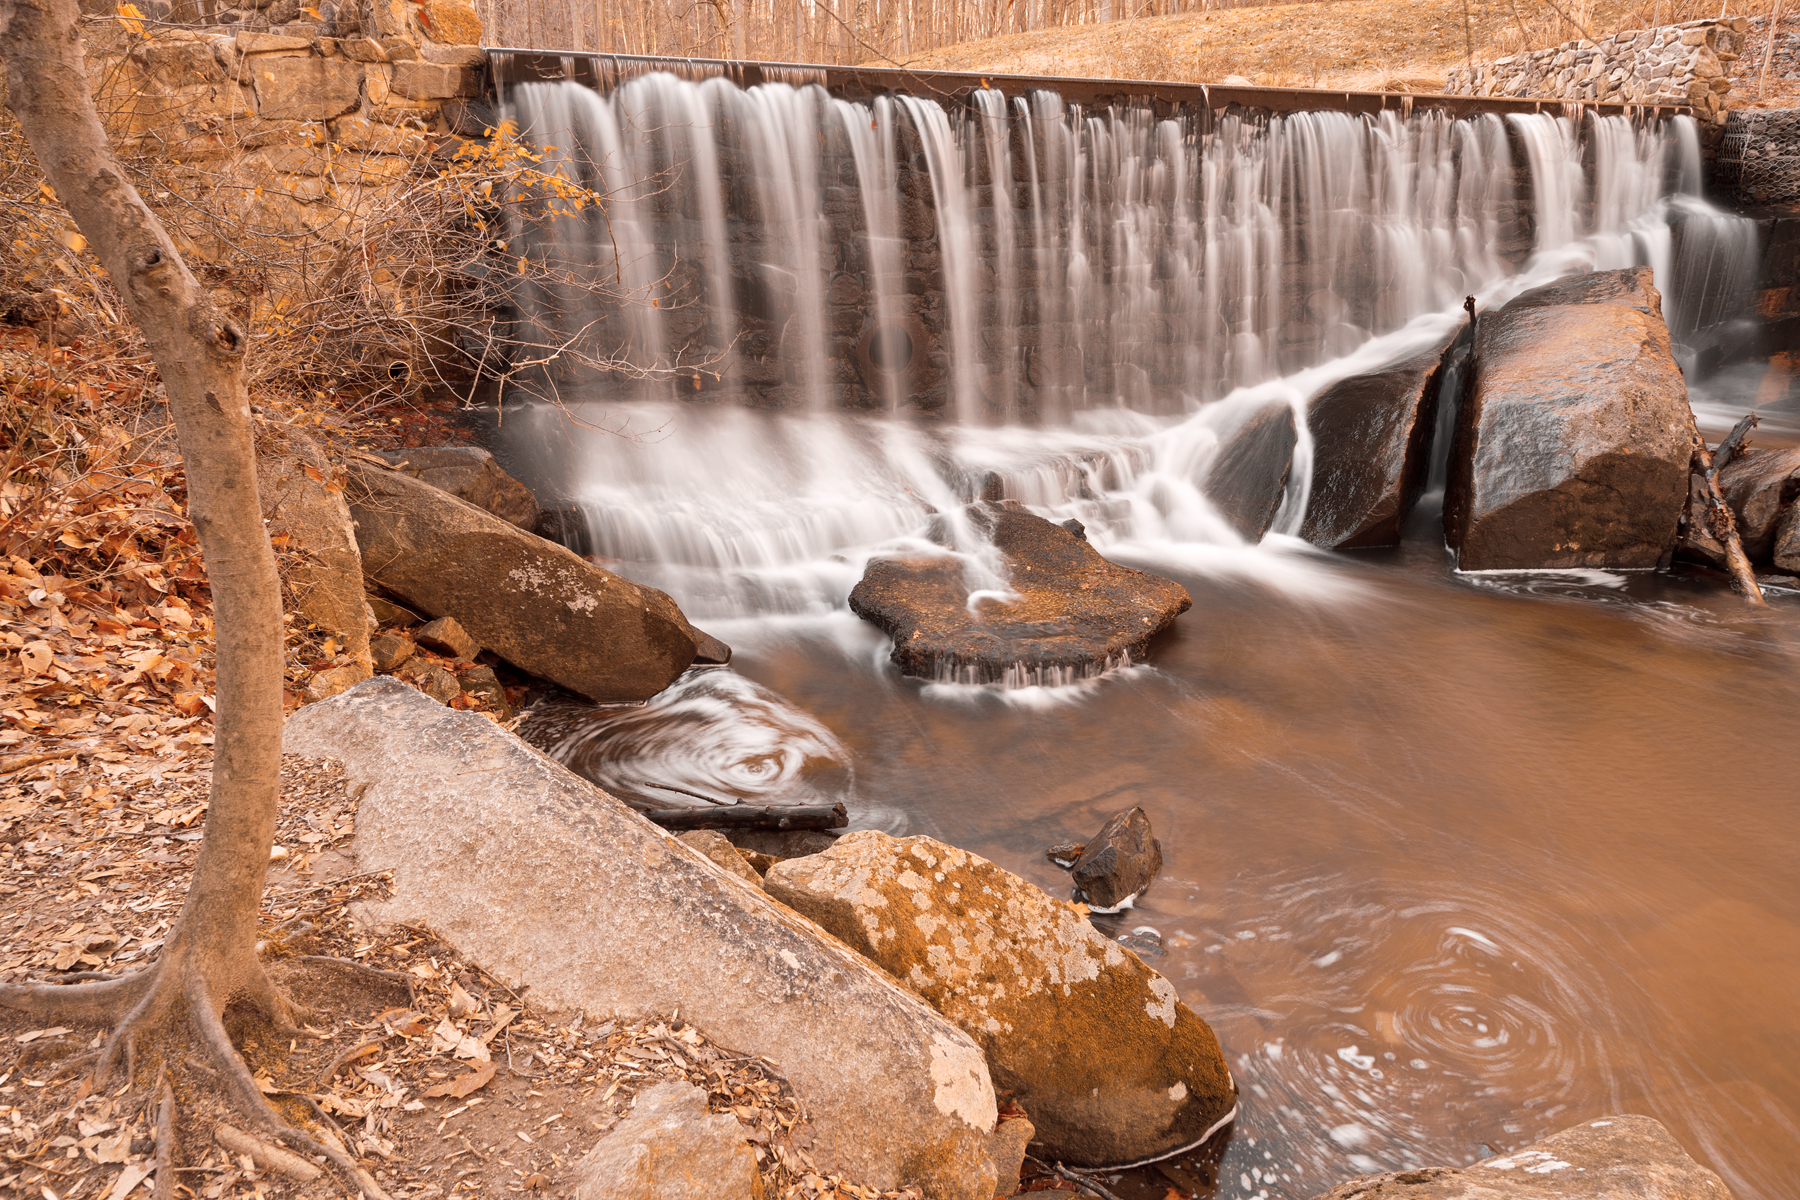 Rustic Rock Run Falls, , Shades, Scenery, Scenic, HQ Photo